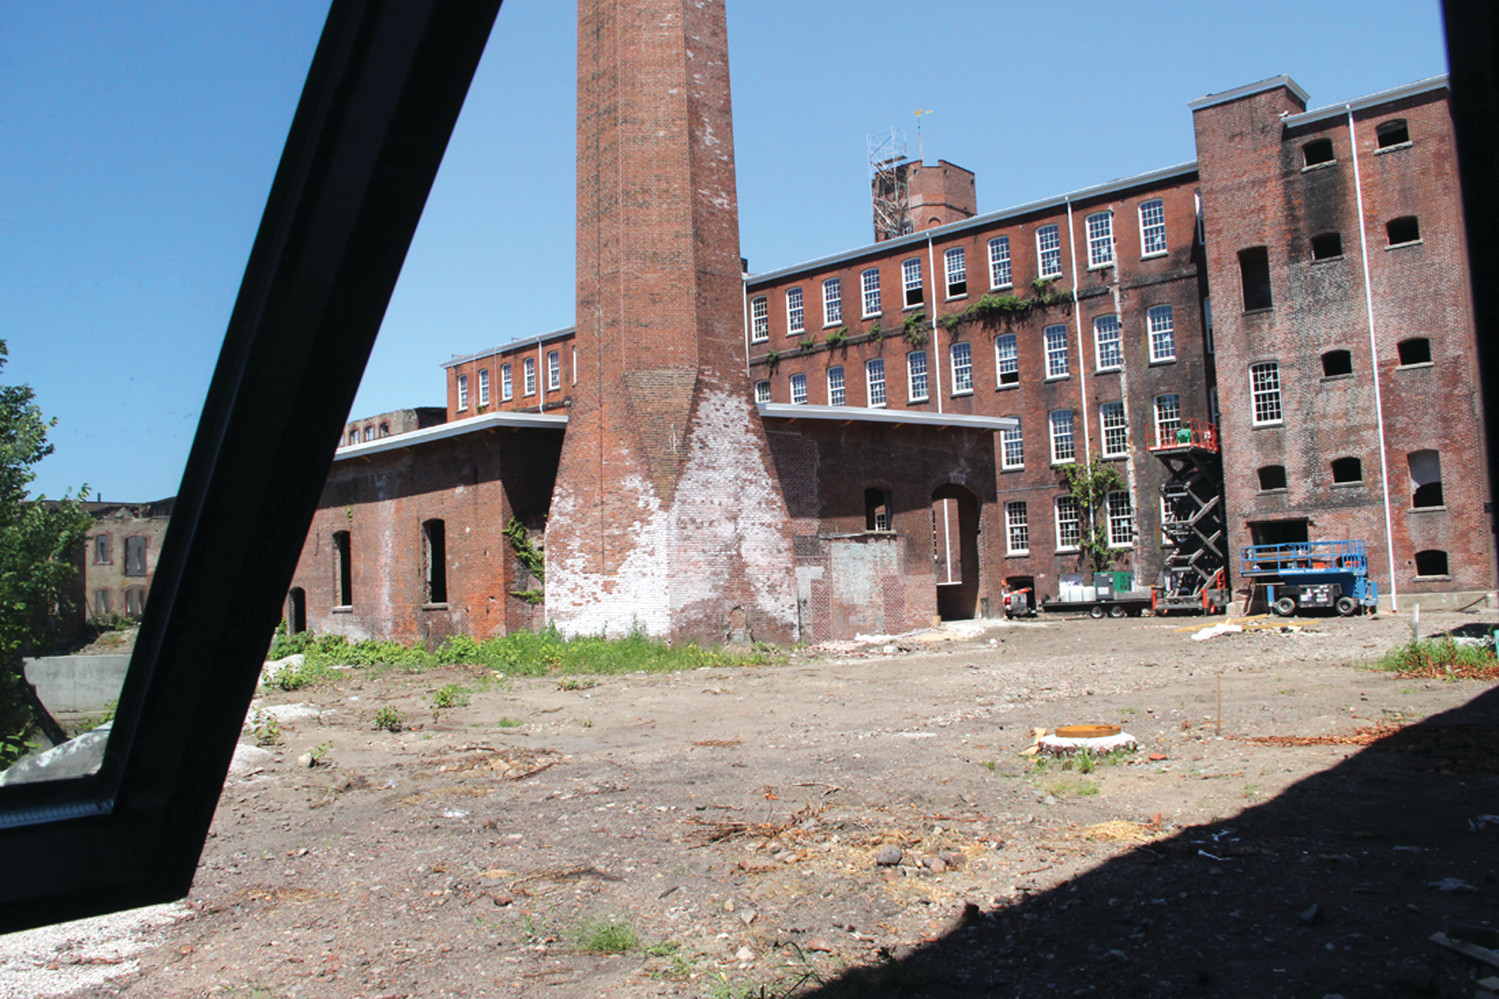 SOME CLEANUP REQUIRED: A courtyard at the Pontiac Mills property provides a rear view of a building on Knight Street. The mill property affords the opportunity for several different types of buildings. This smaller building here could perhaps become an office for rentals, of which there should be many, as the complex will eventually have 137 rental units.